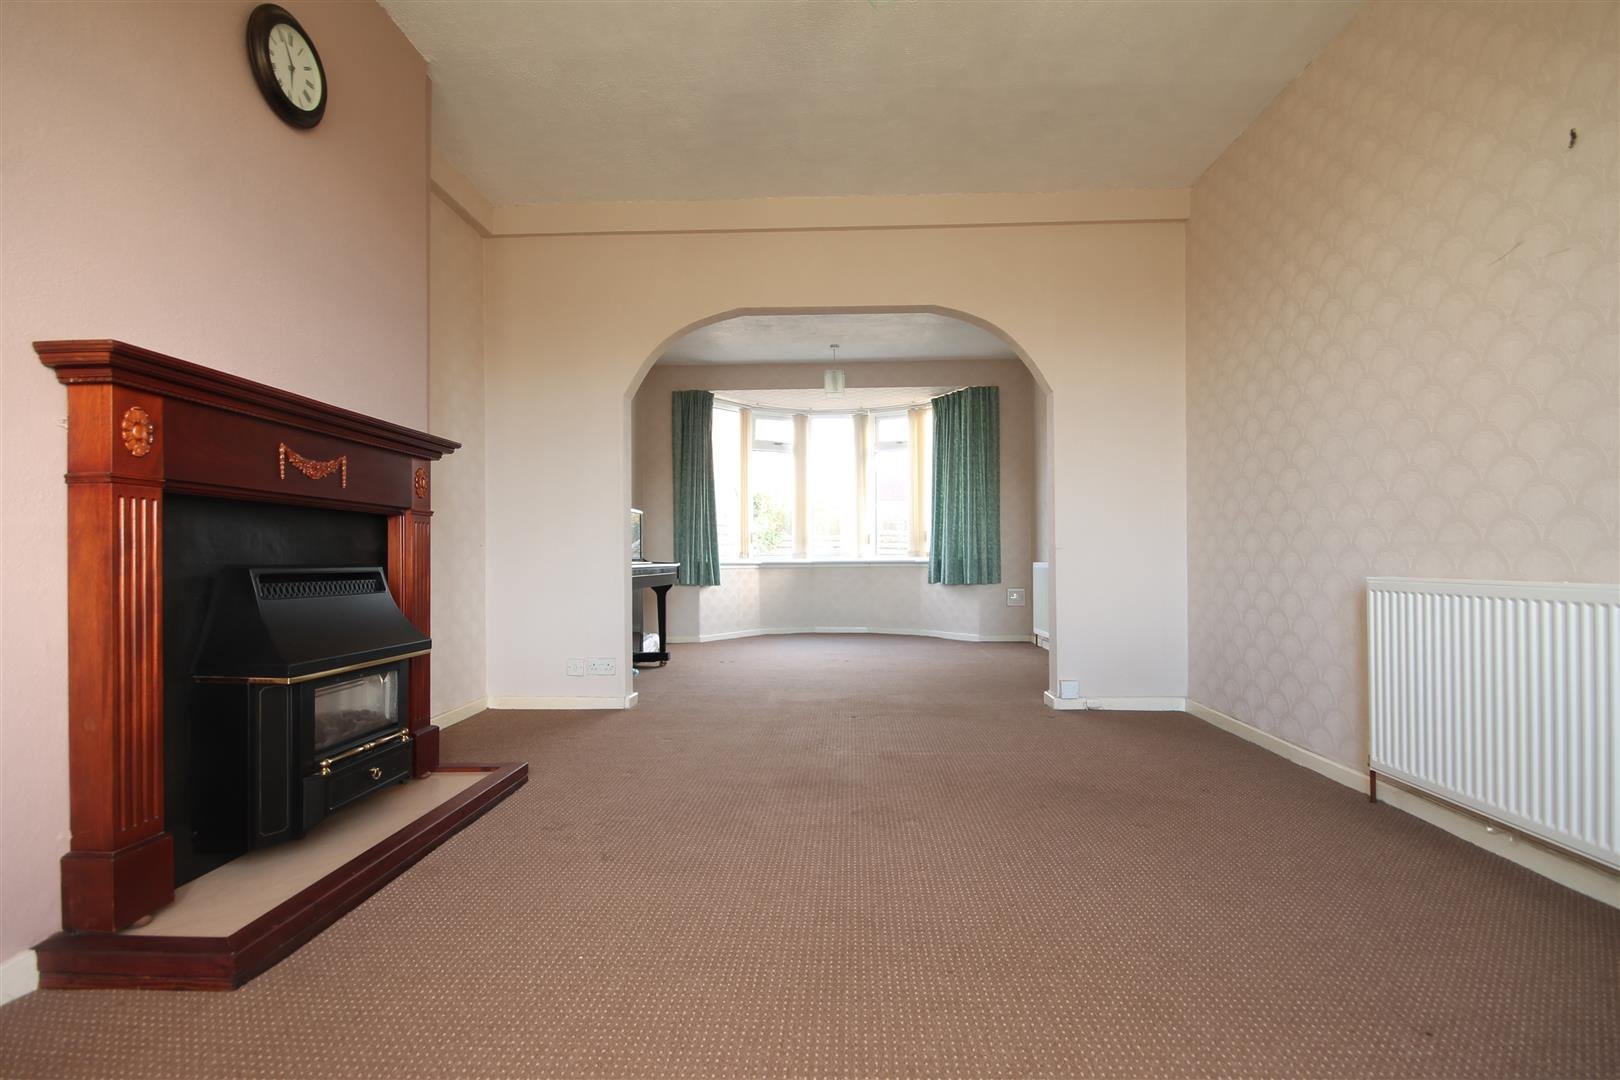 Kirkheaton Place Newcastle Upon Tyne, 2 Bedrooms  House - semi-detached ,Sold (STC)